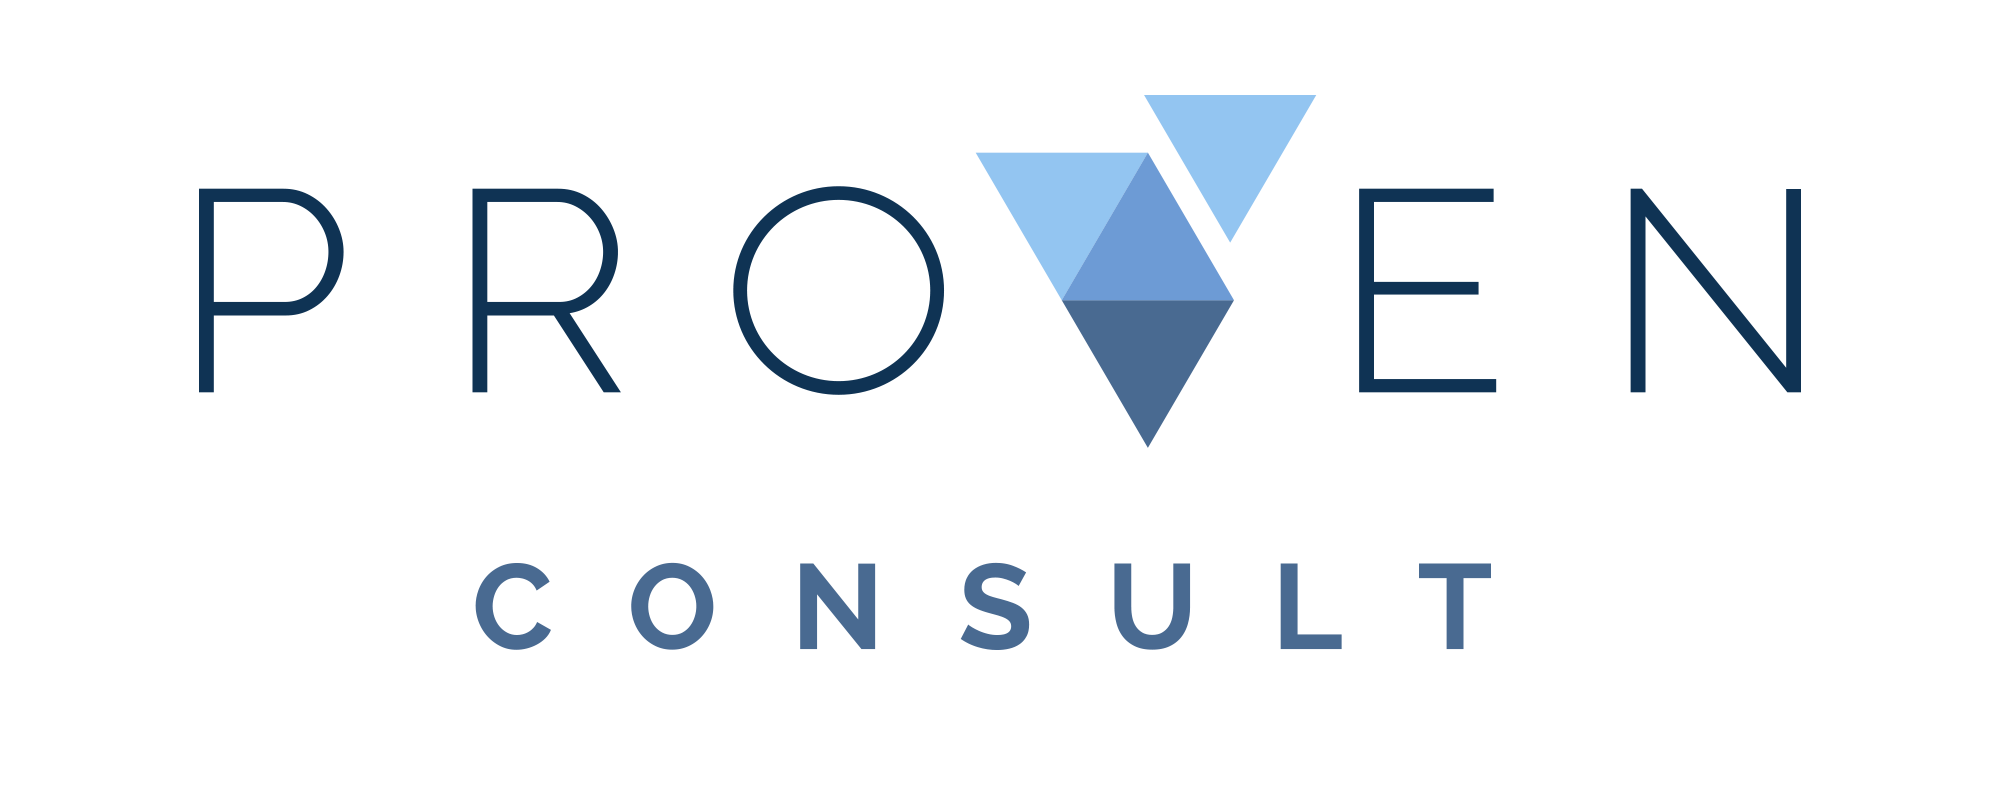 Proven Consult and VSight Advertise Live Webinar on AR and Remote Collaboration